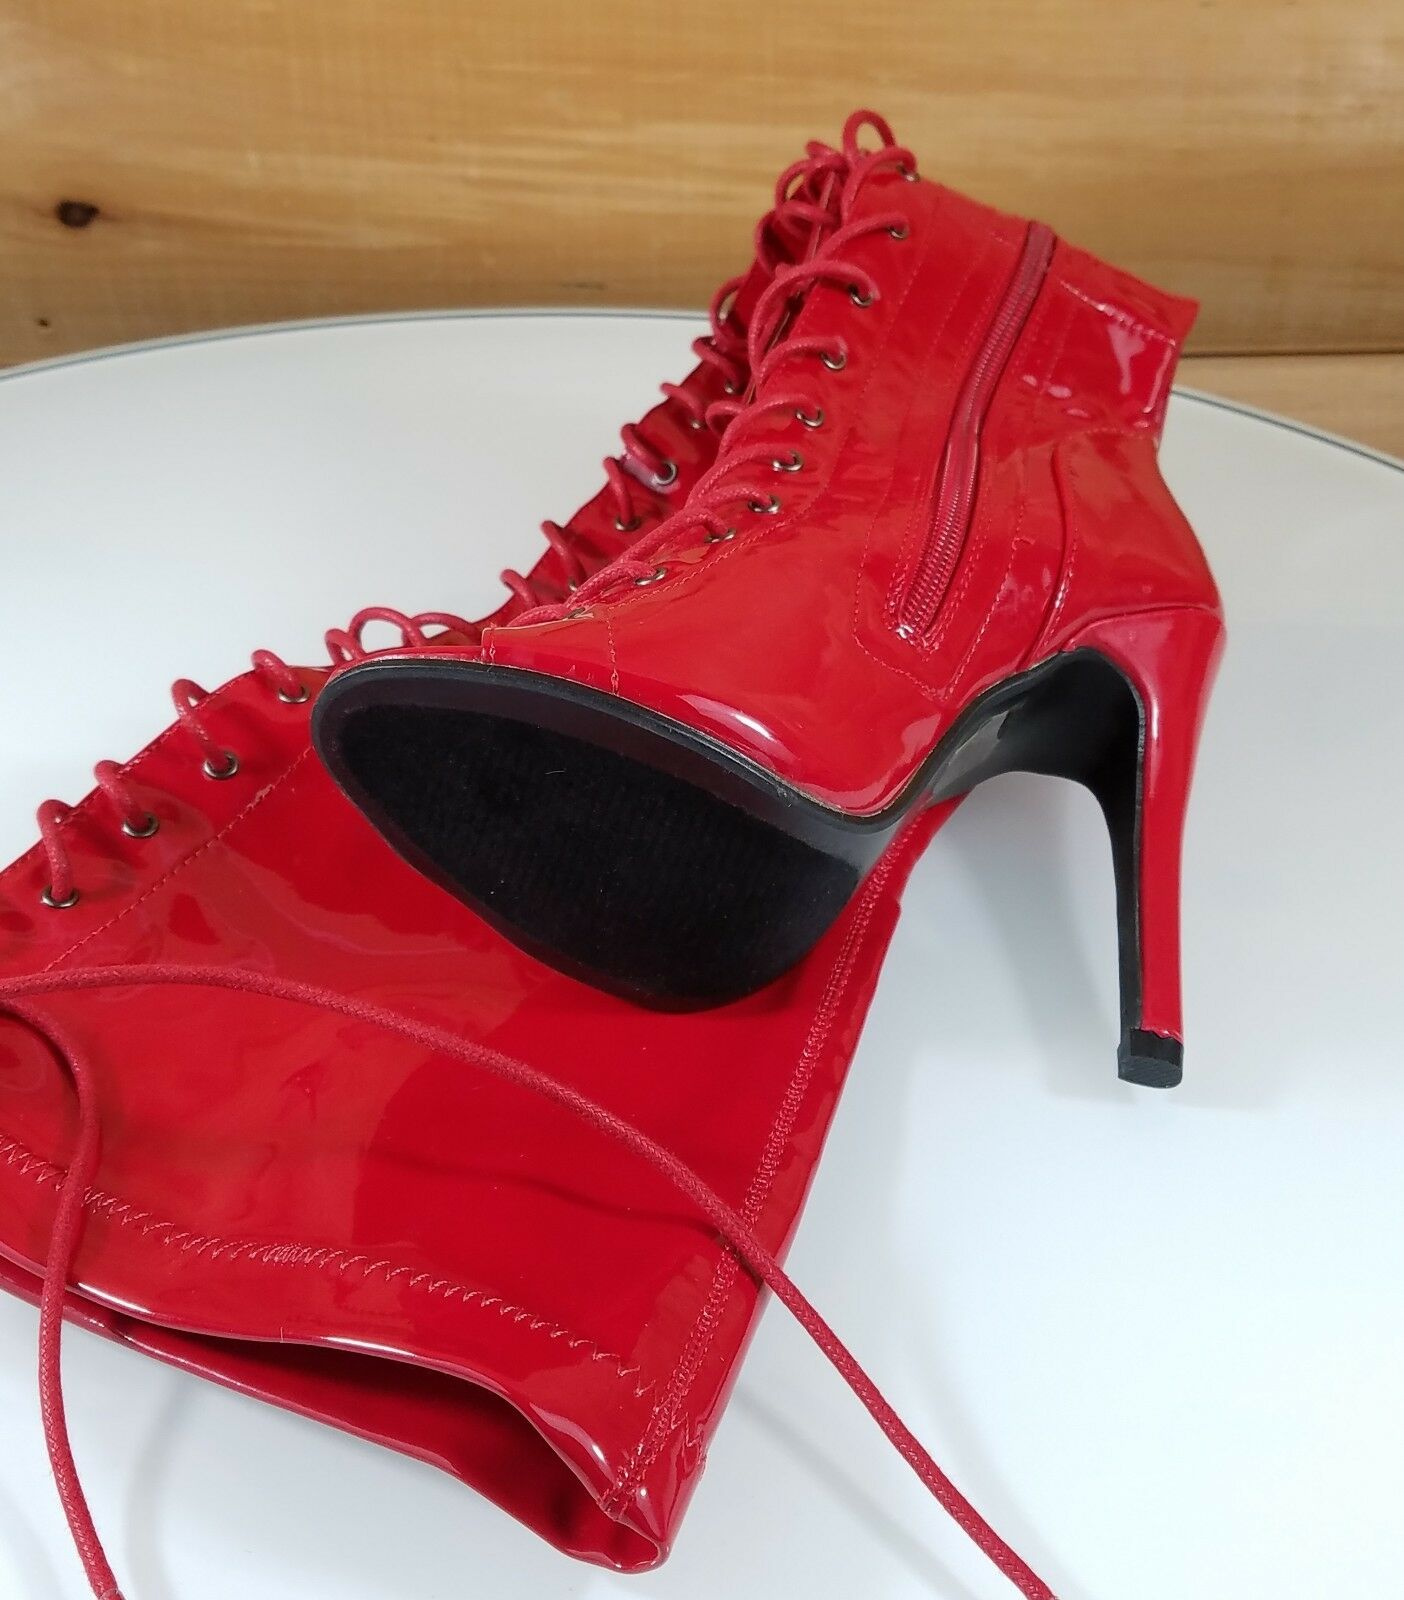 Top Show ROT Patent Open Up Toe High Heel Lace Up Open OTK Thigh Stiefel 5-10 d9db02